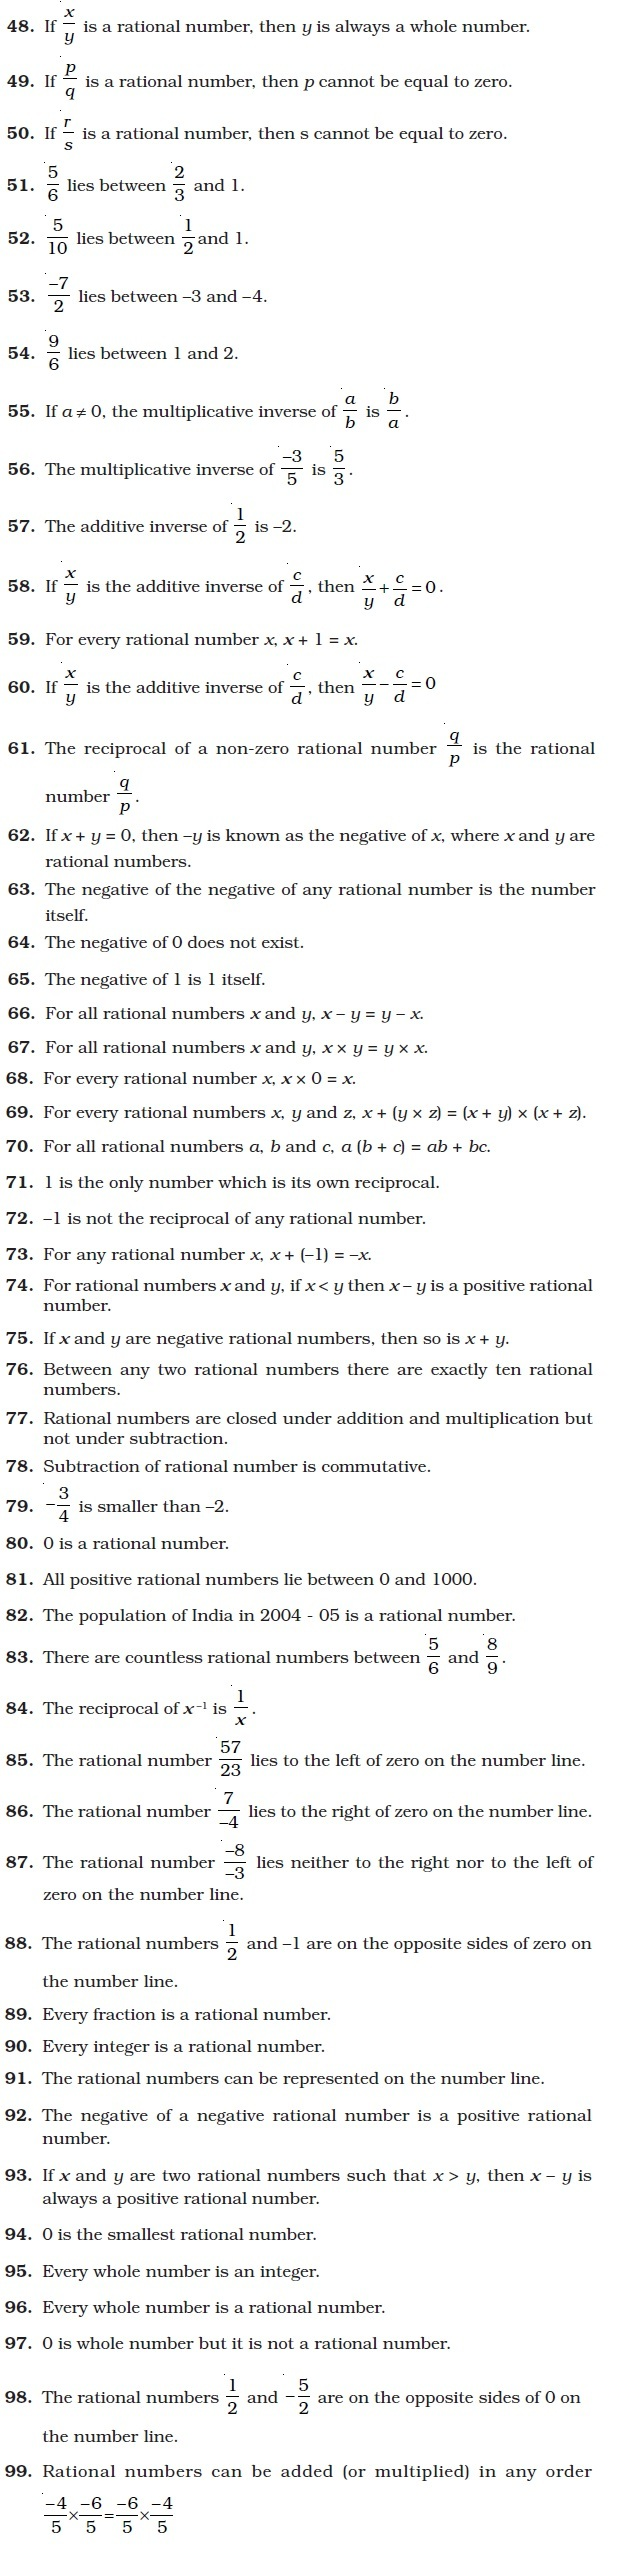 Class 8 Important Questions for Maths – Rational Numbers | AglaSem ...